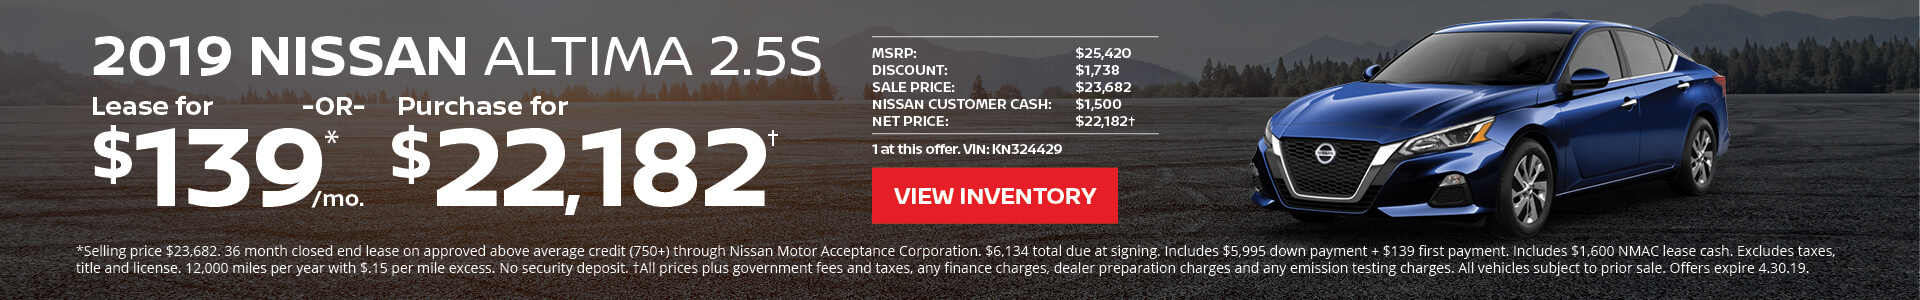 Nissan Altima $139 Lease